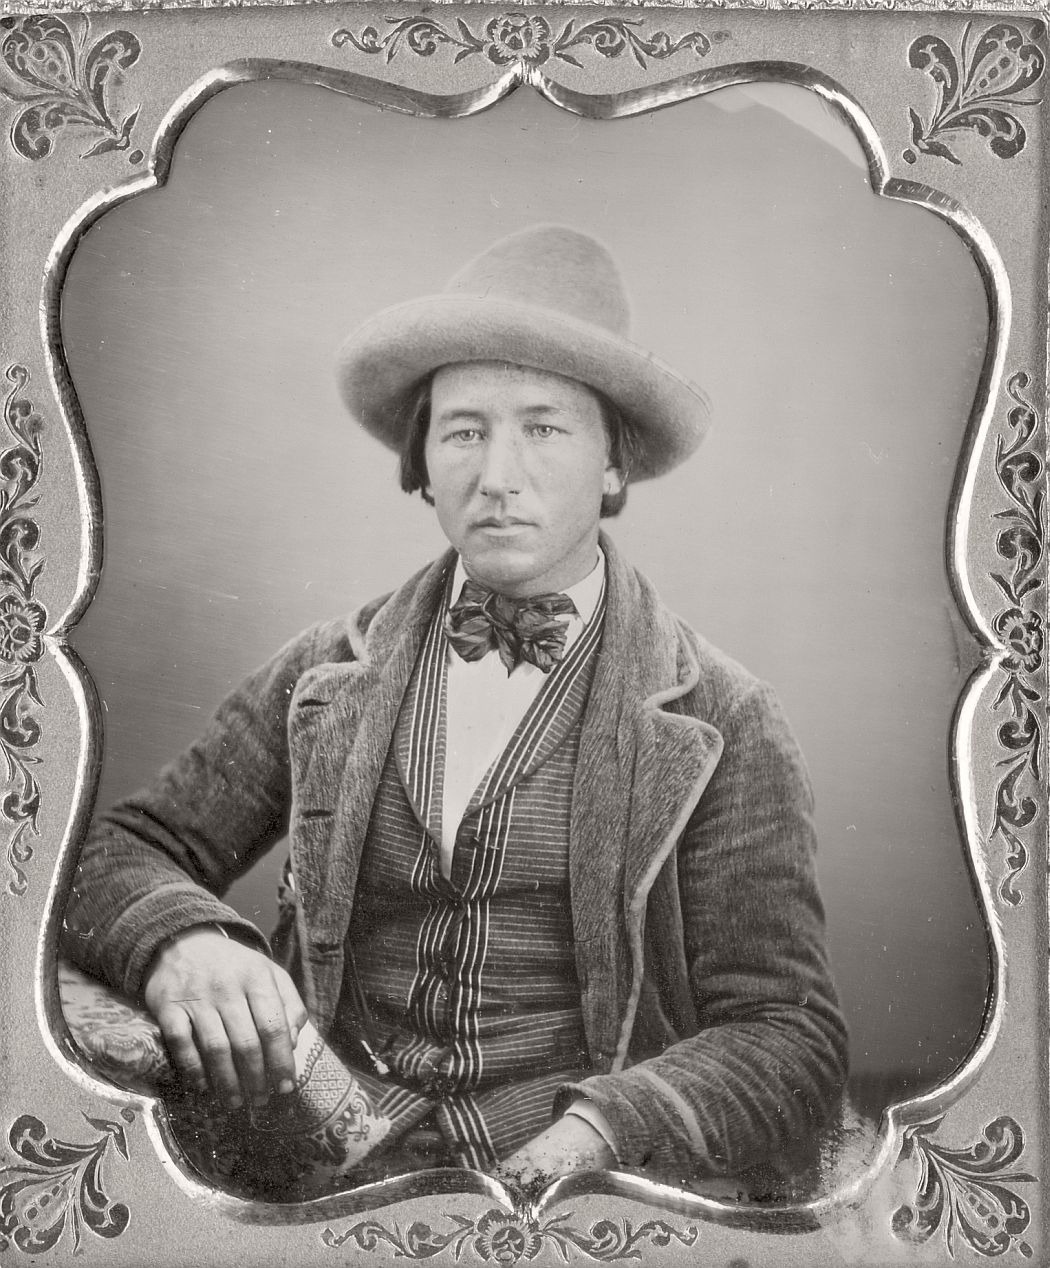 victorian-era-daguerreotype-of-men-in-hat-1850s-xix-century-09